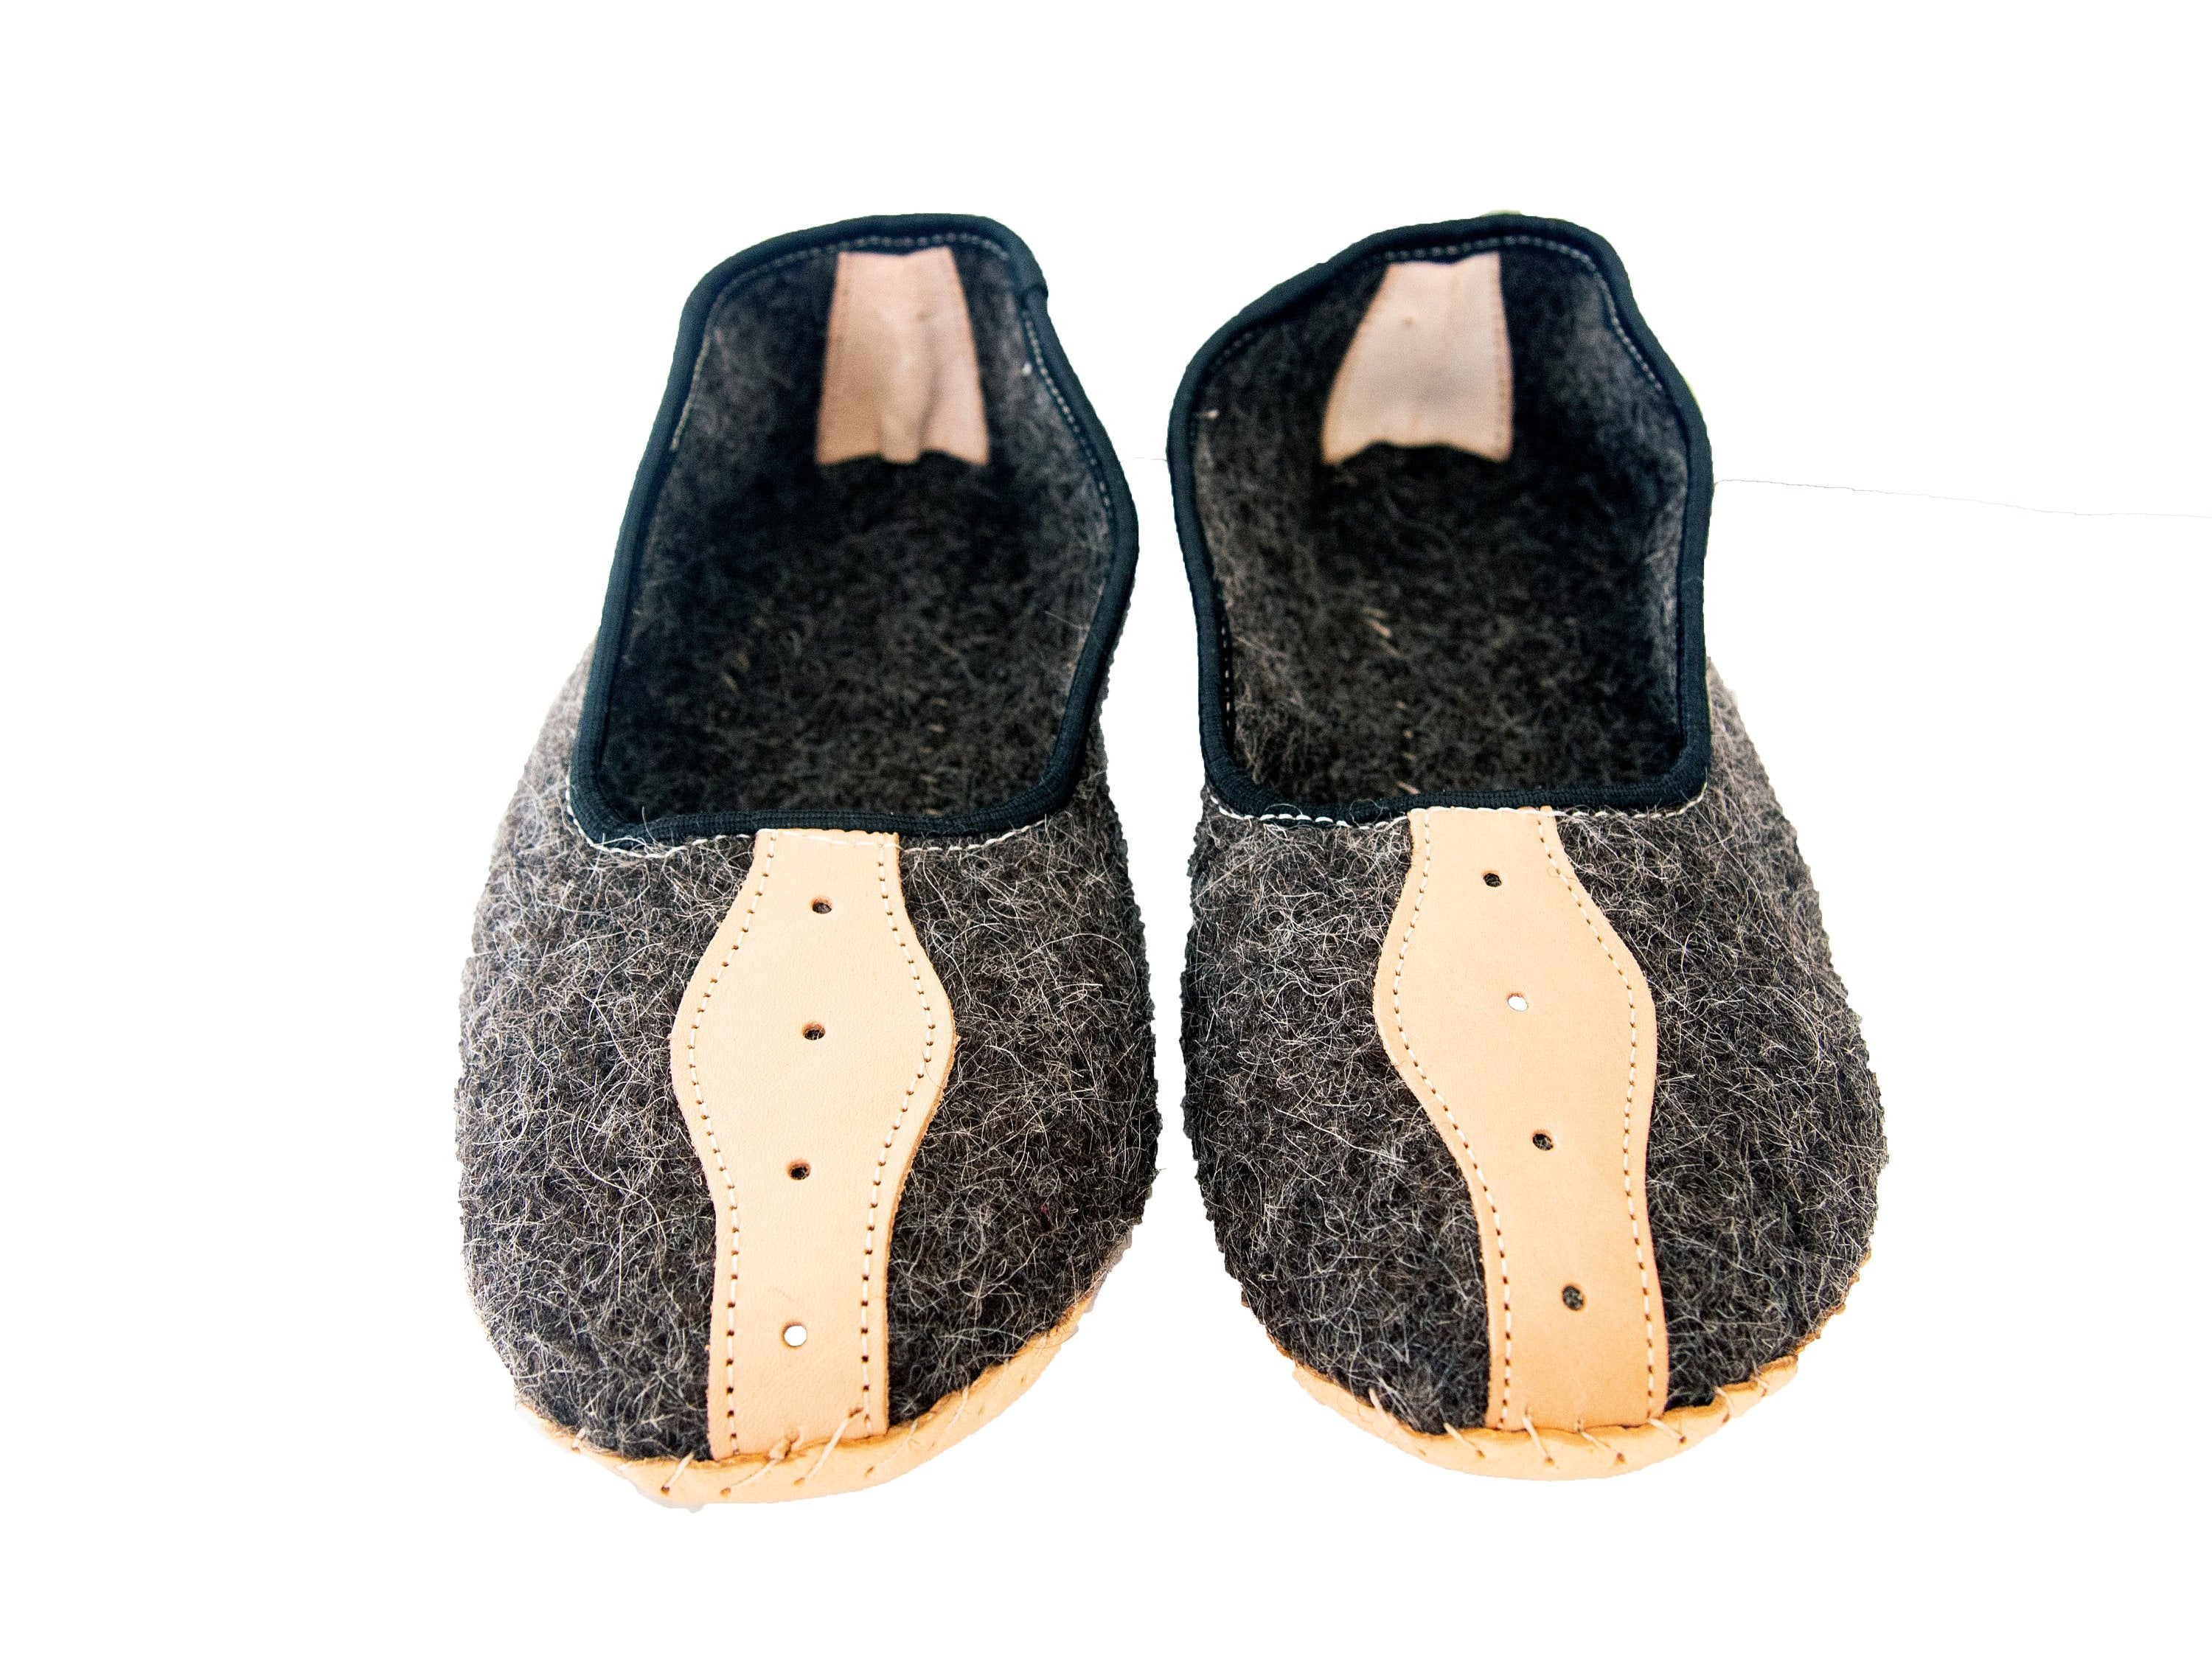 Mens Felt and Real Leather Slippers.